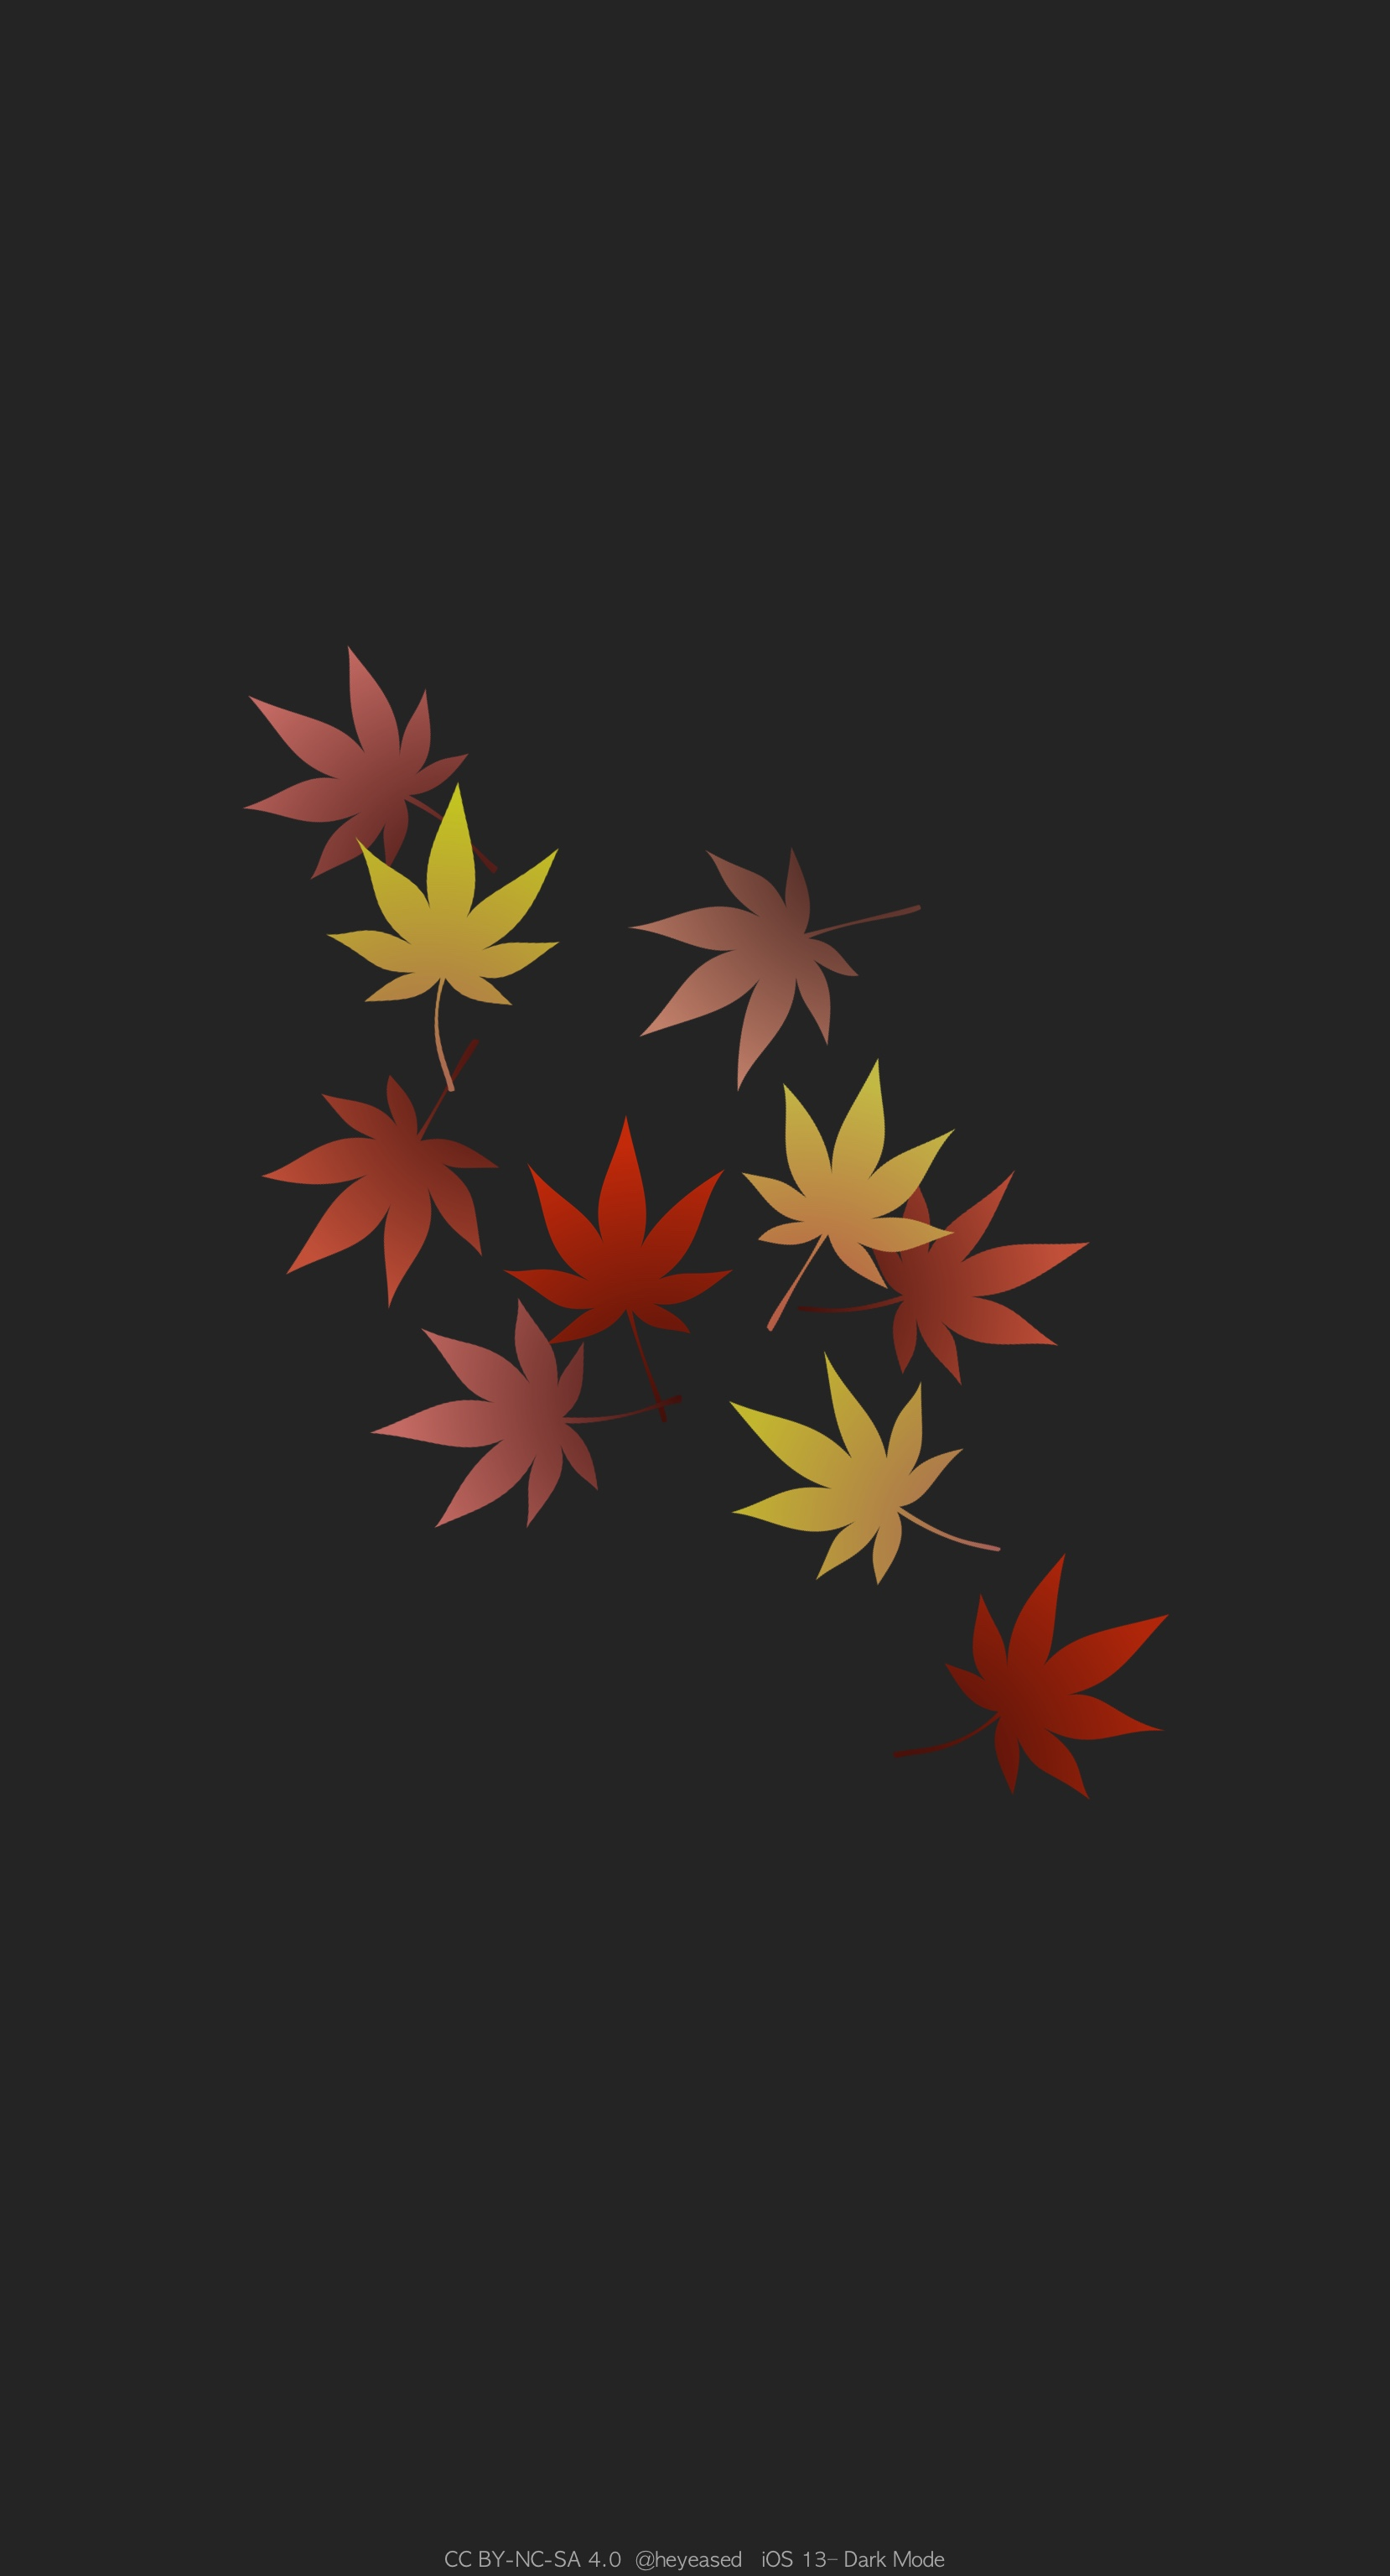 ドックを隠す秋の壁紙 Hide Dock Fall Mysterious Iphone Wallpaper